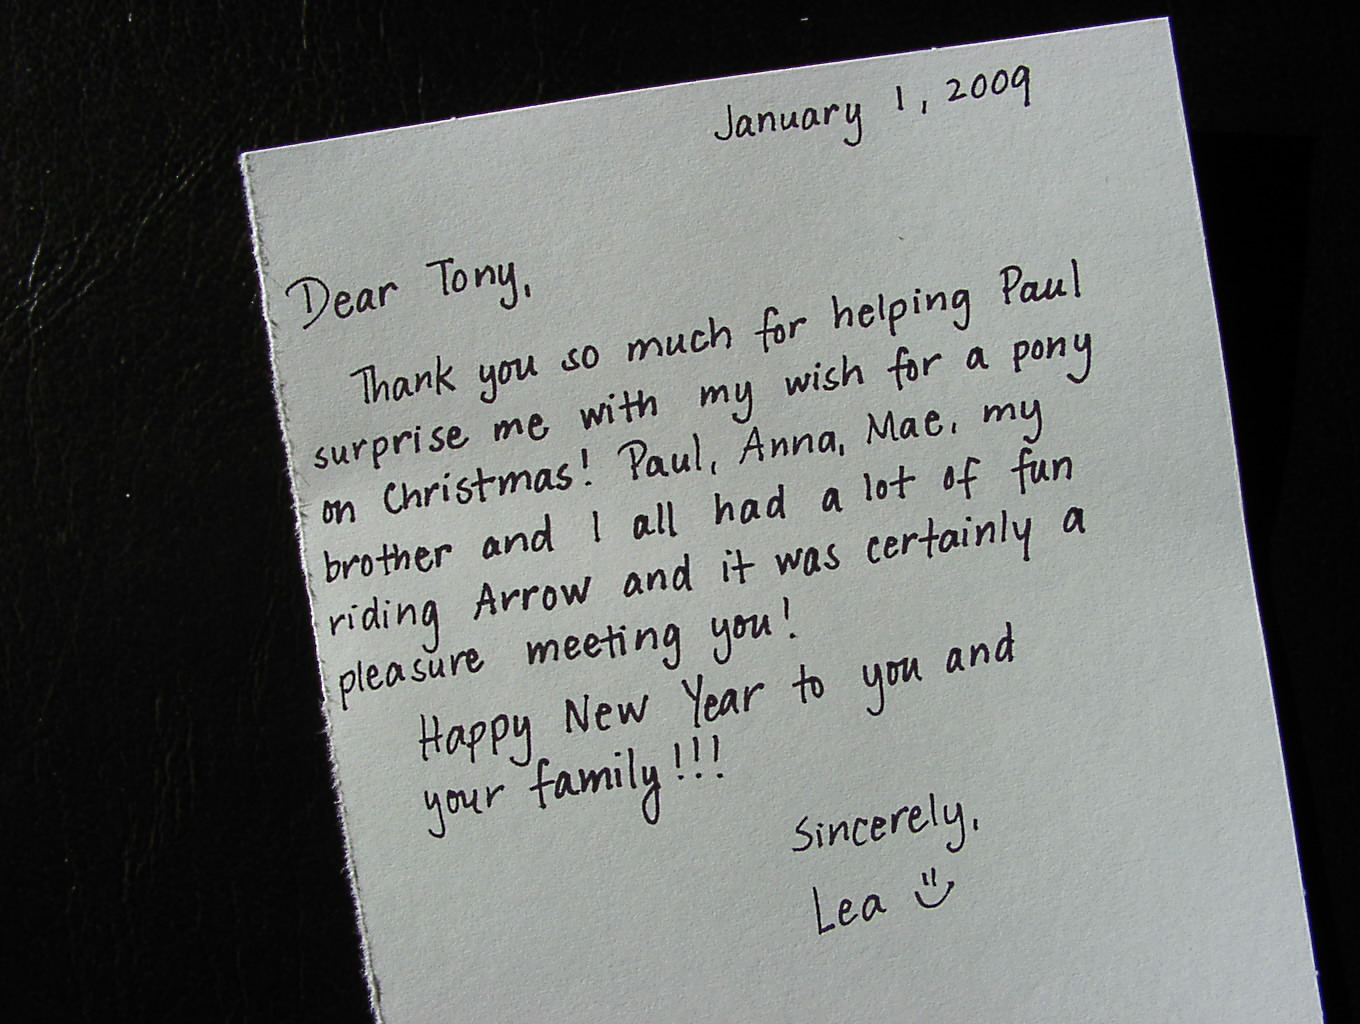 CountryTime Pony Rides - Customer Letter 3